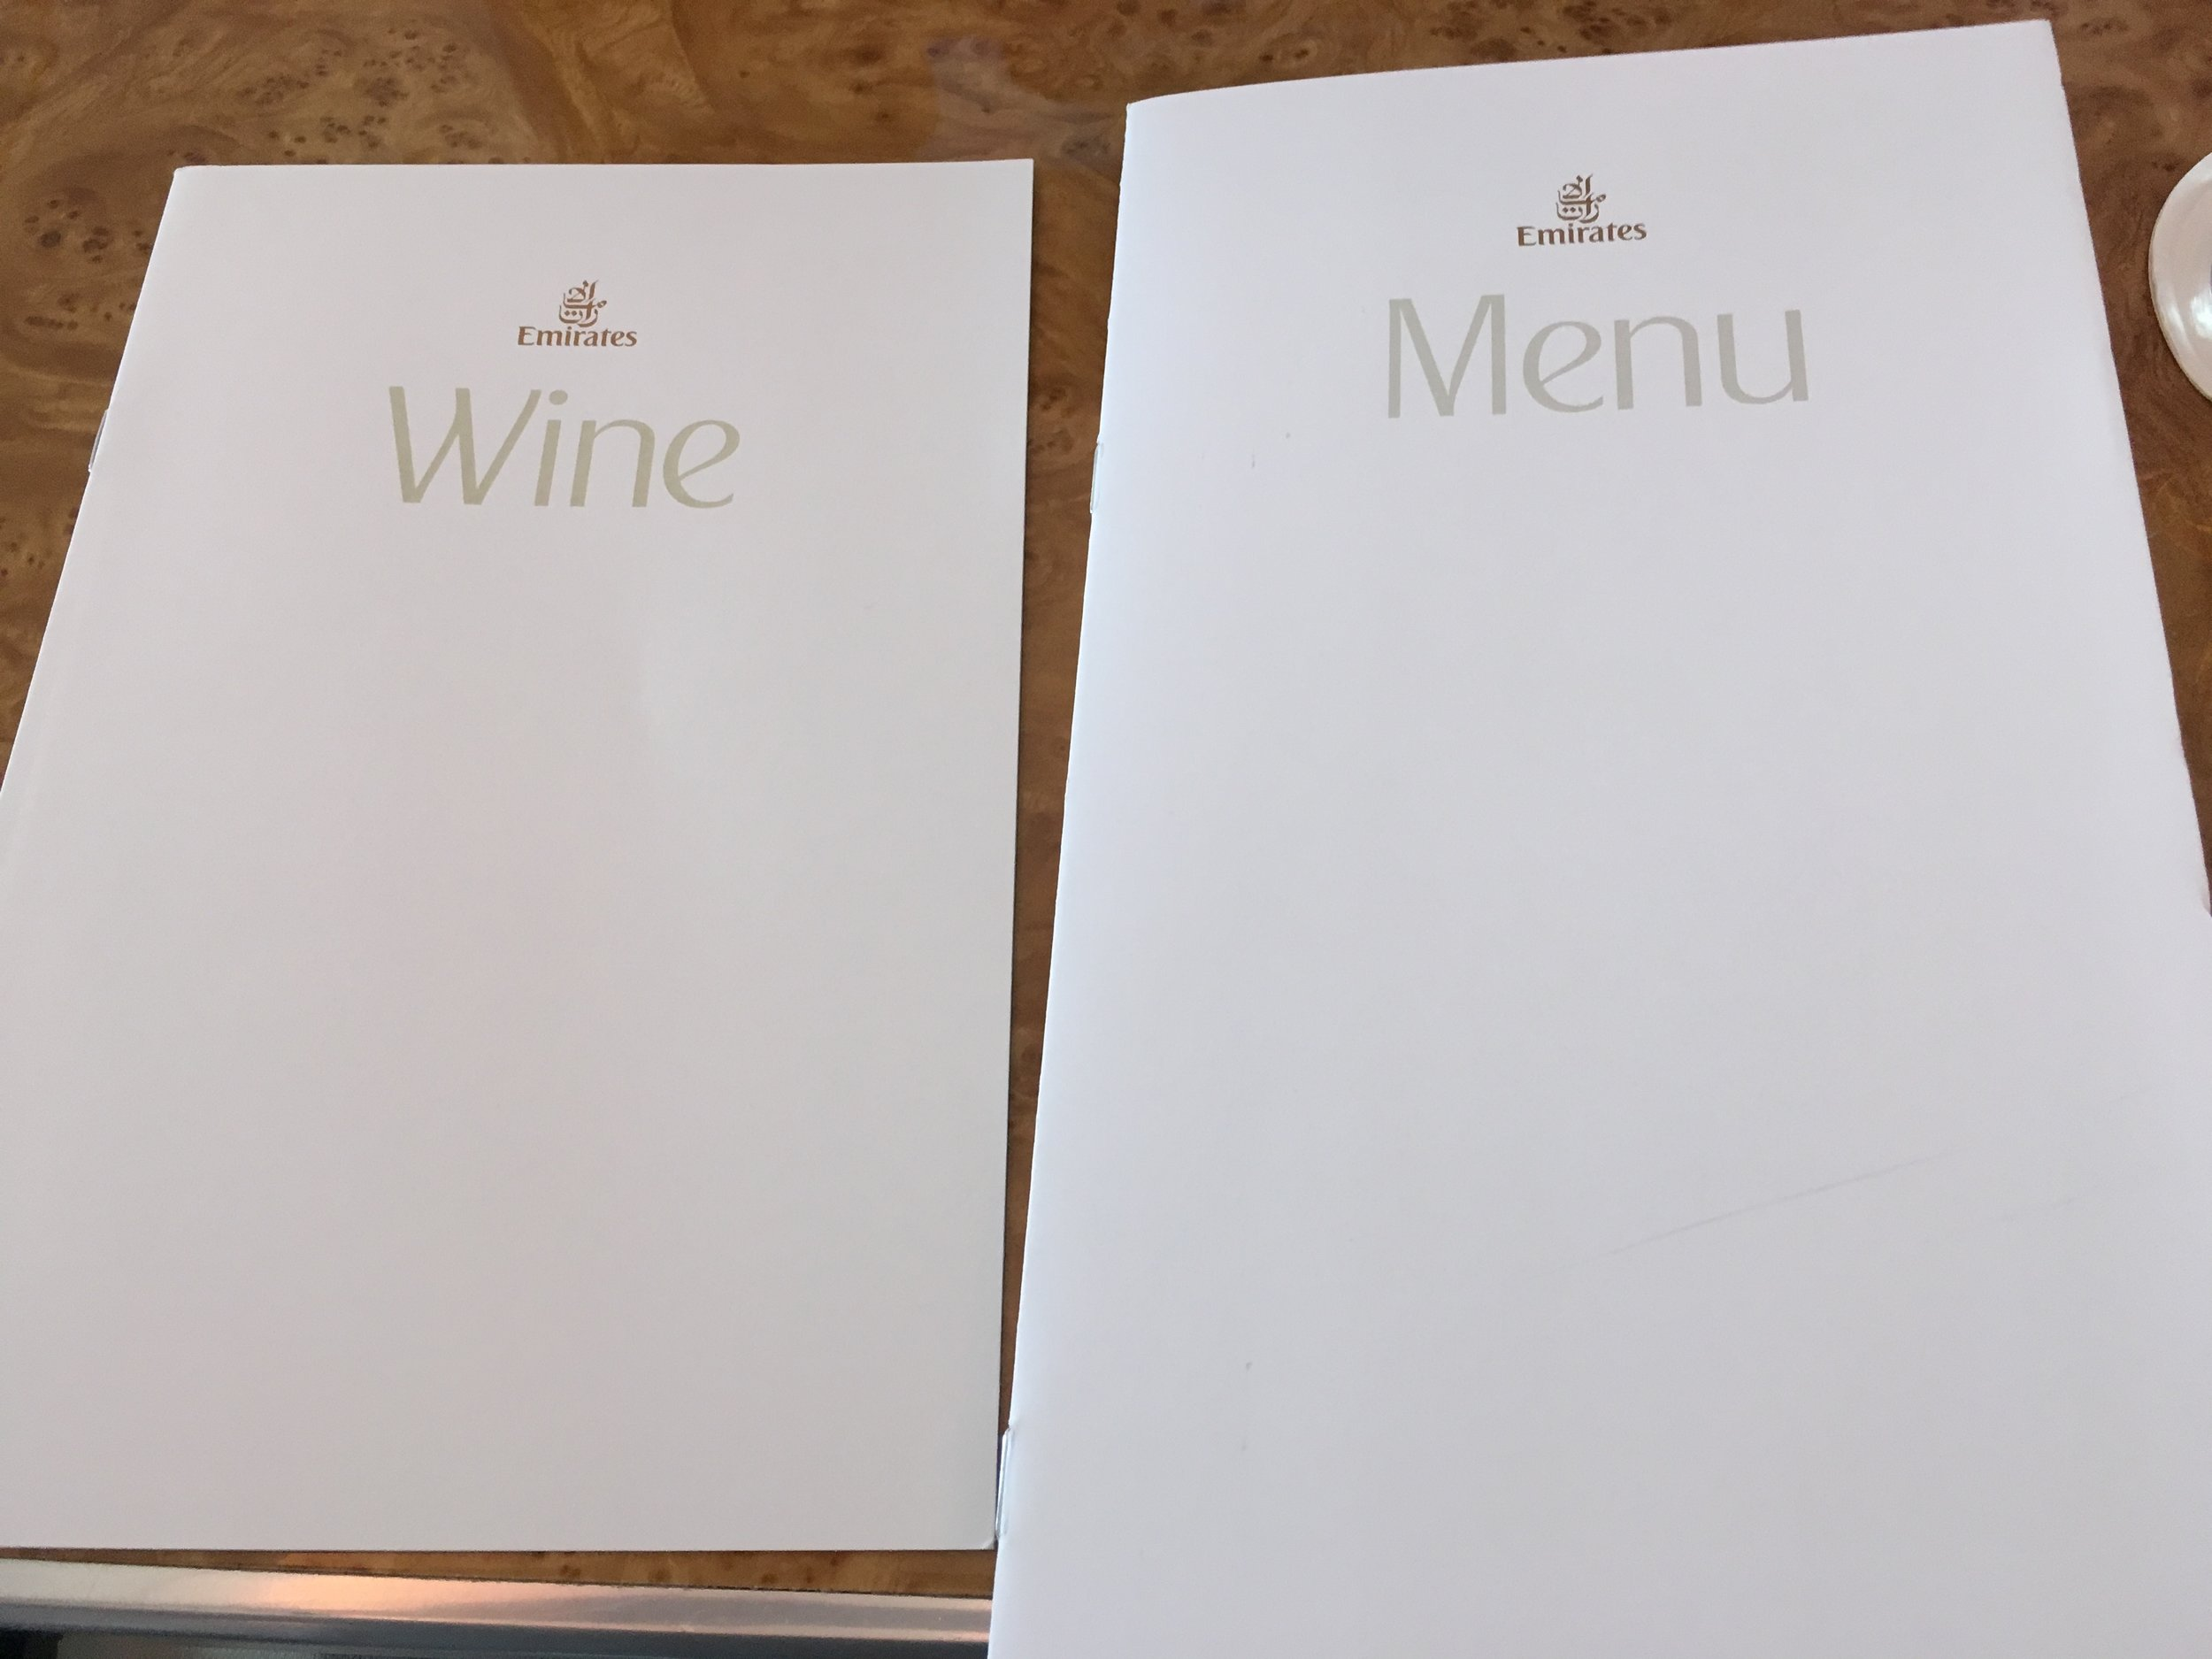 Wine and food menu